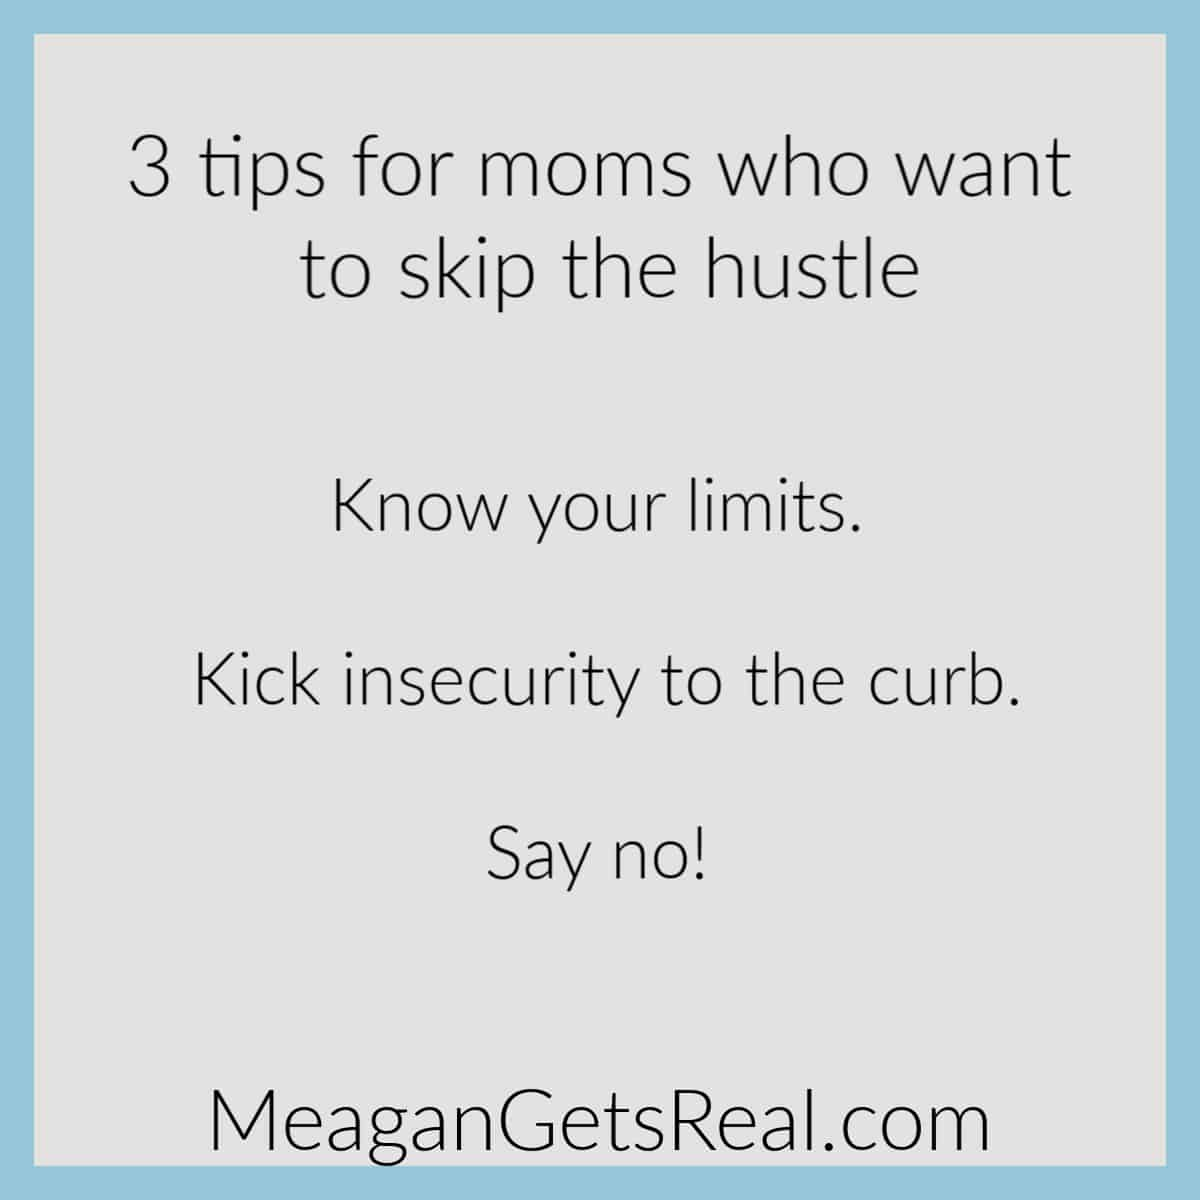 3 Tips for moms who want to skip the hustle. Support for moms doesn't have to be hard to find with this comprehensive guide filled with parenting resources for moms you won't want to miss.